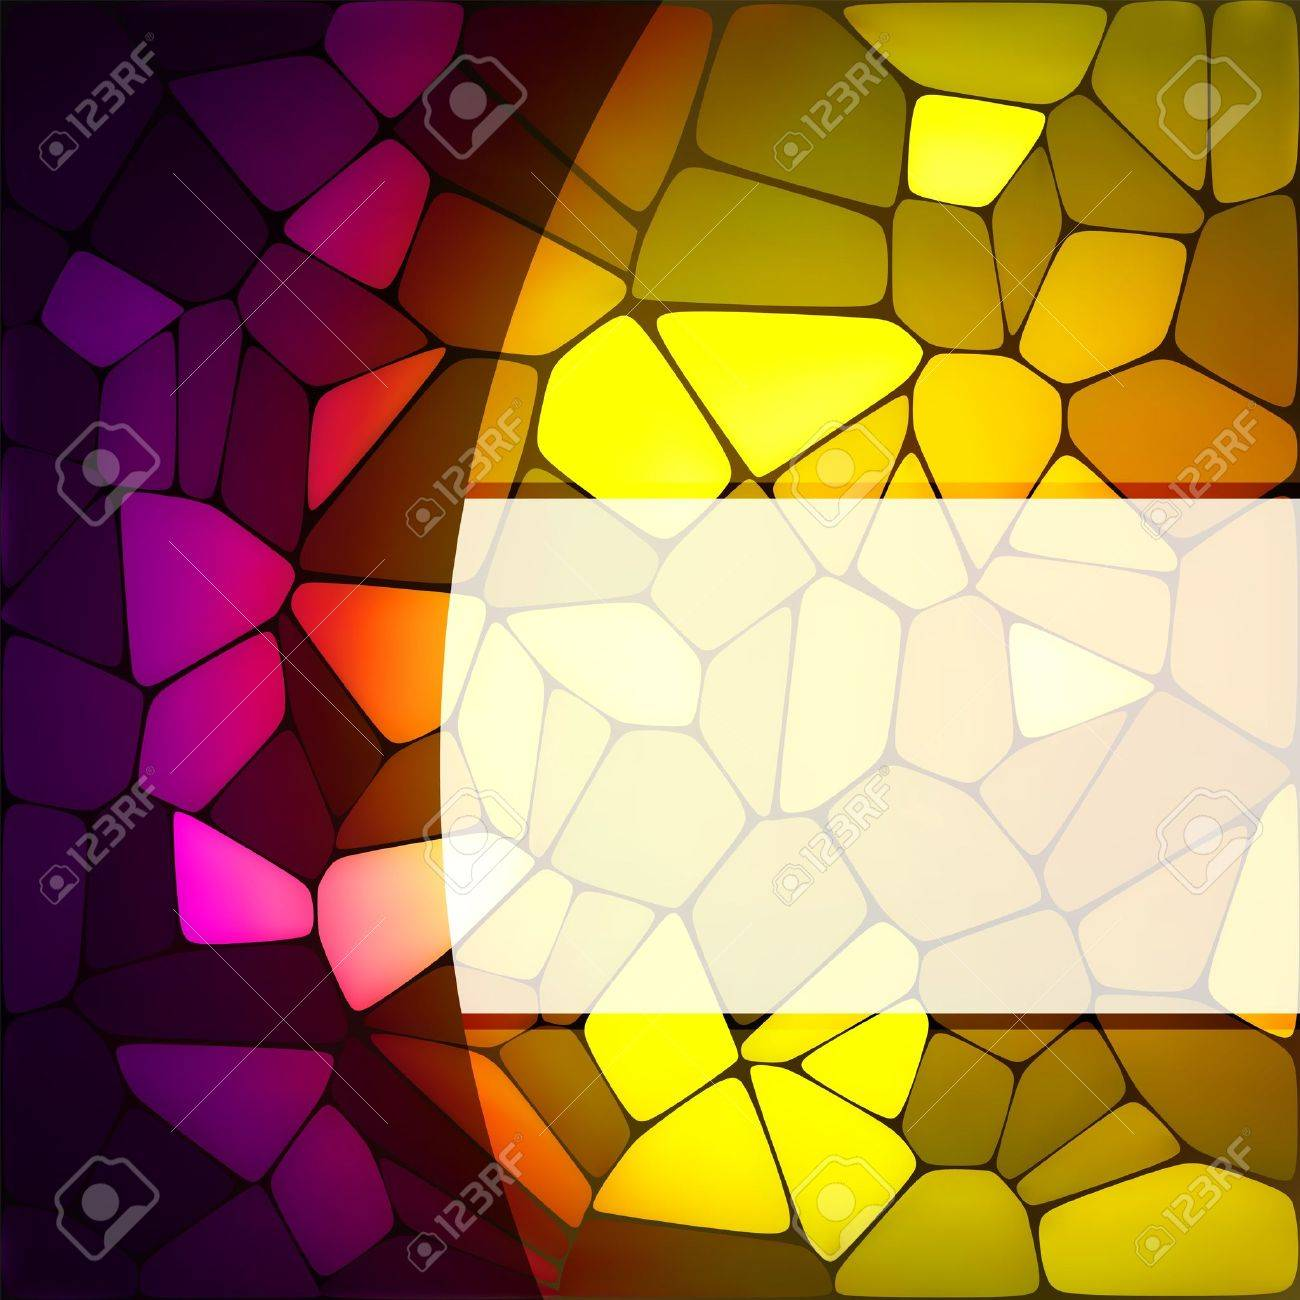 Stained glass design template. EPS 8 vector file included Stock Vector - 9910158